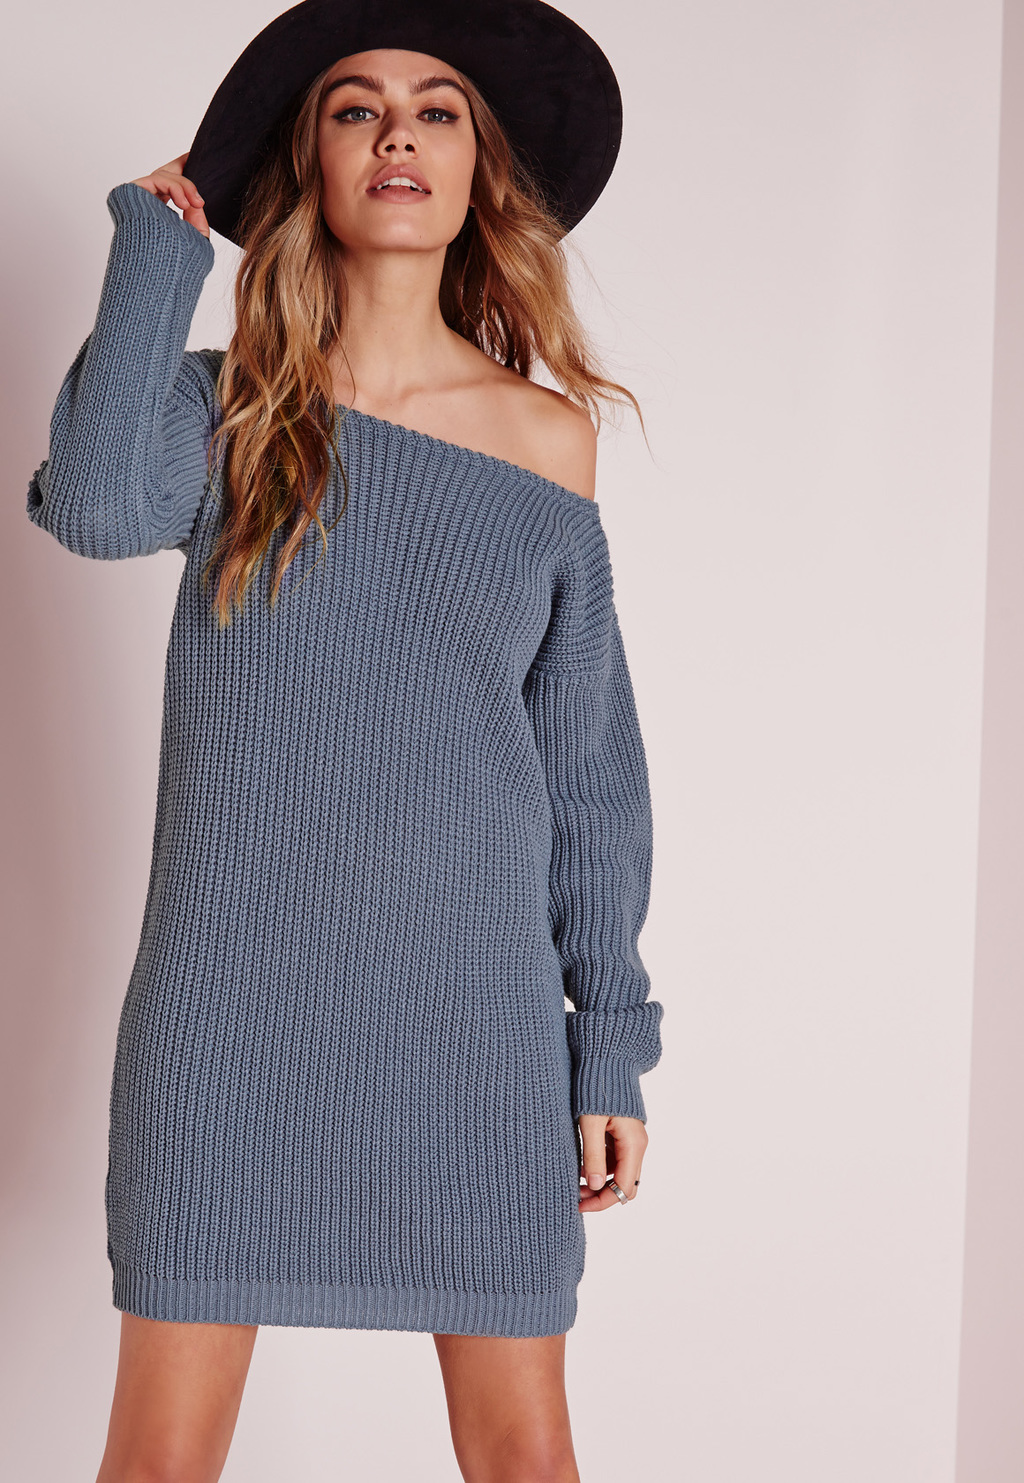 Off Shoulder Knitted Jumper Dress Blue, Blue - style: jumper dress; length: mid thigh; neckline: off the shoulder; pattern: plain; predominant colour: denim; occasions: casual, creative work; fit: straight cut; fibres: acrylic - 100%; sleeve length: long sleeve; sleeve style: standard; texture group: knits/crochet; pattern type: fabric; season: s/s 2016; wardrobe: highlight